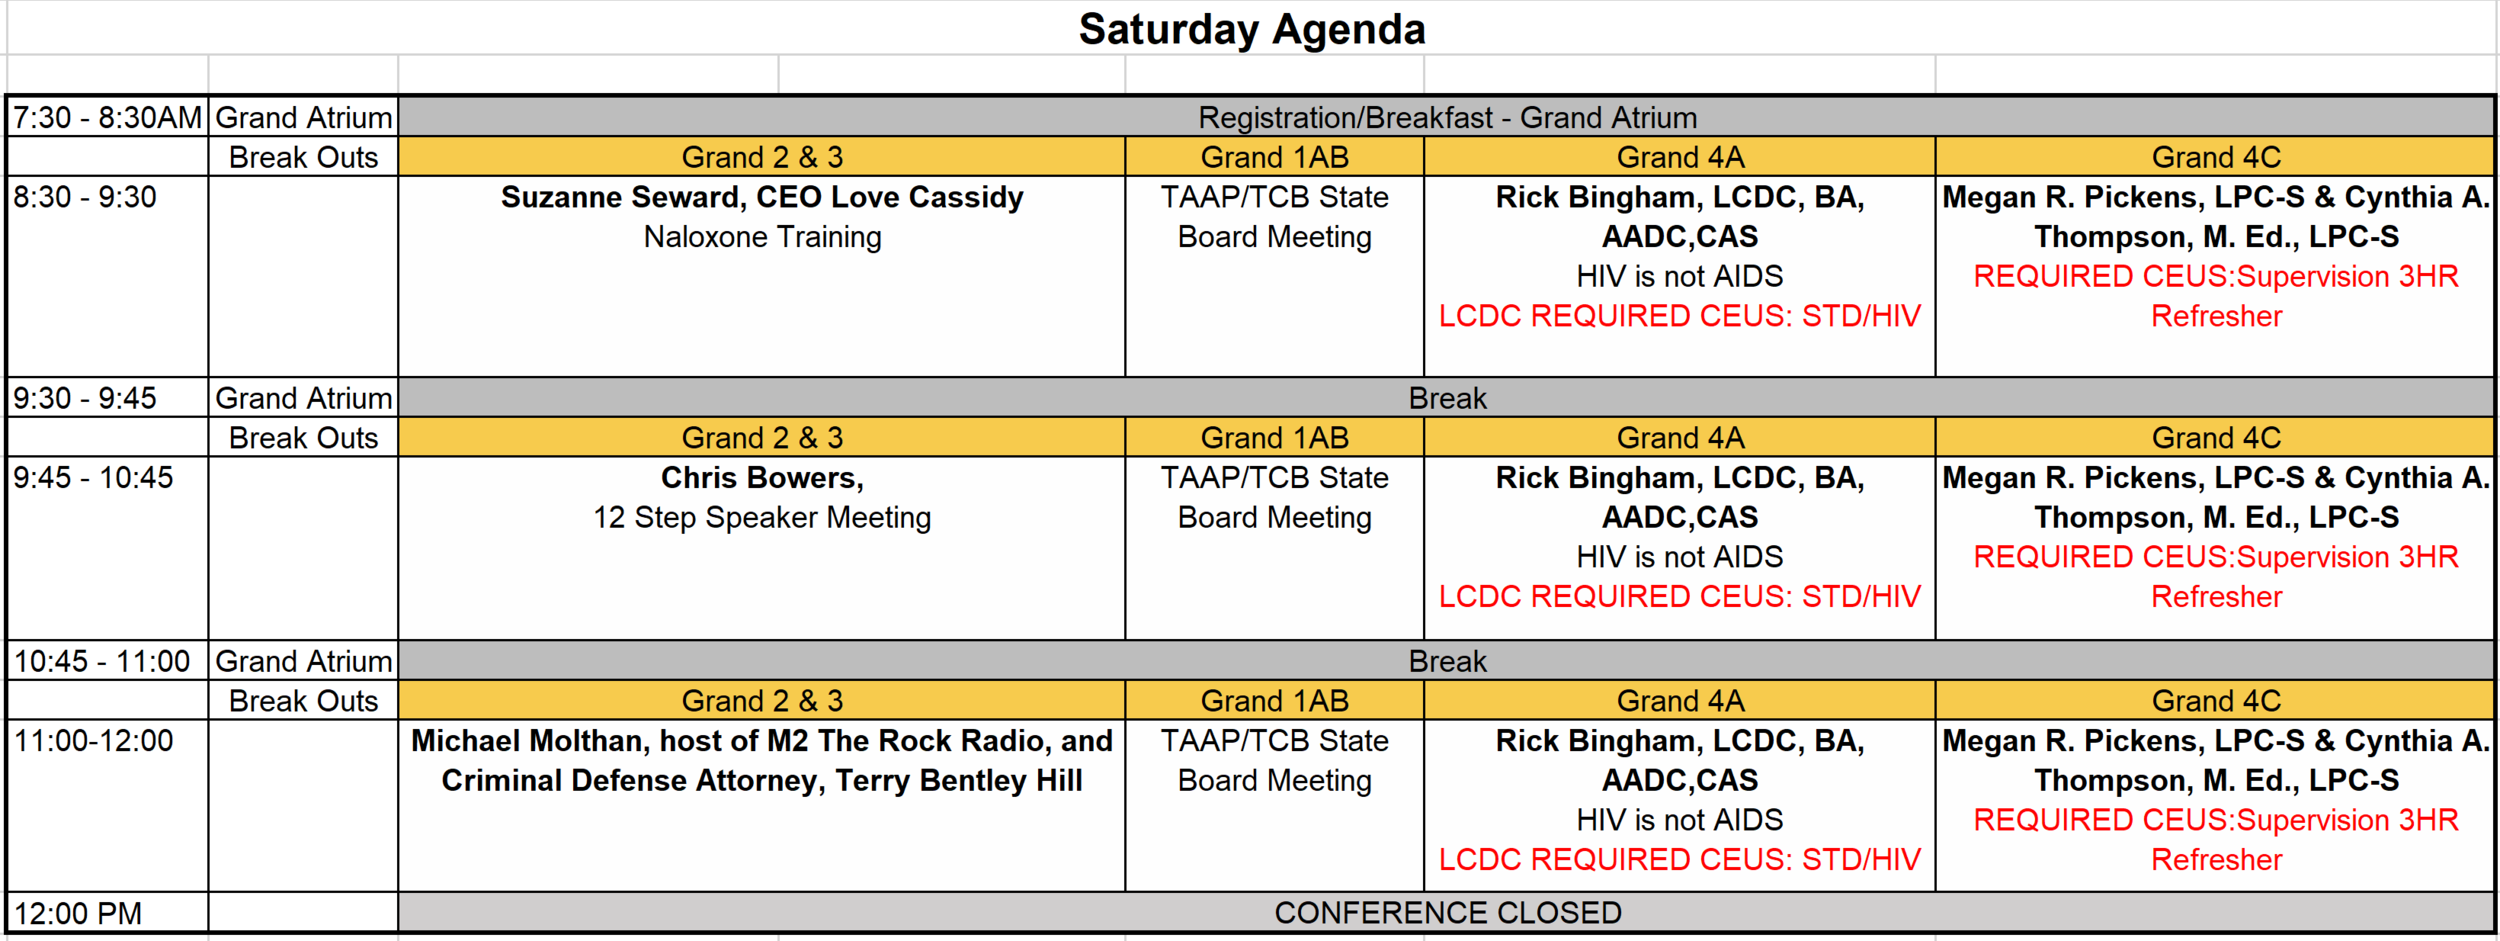 Saturday Agenda 2019.PNG